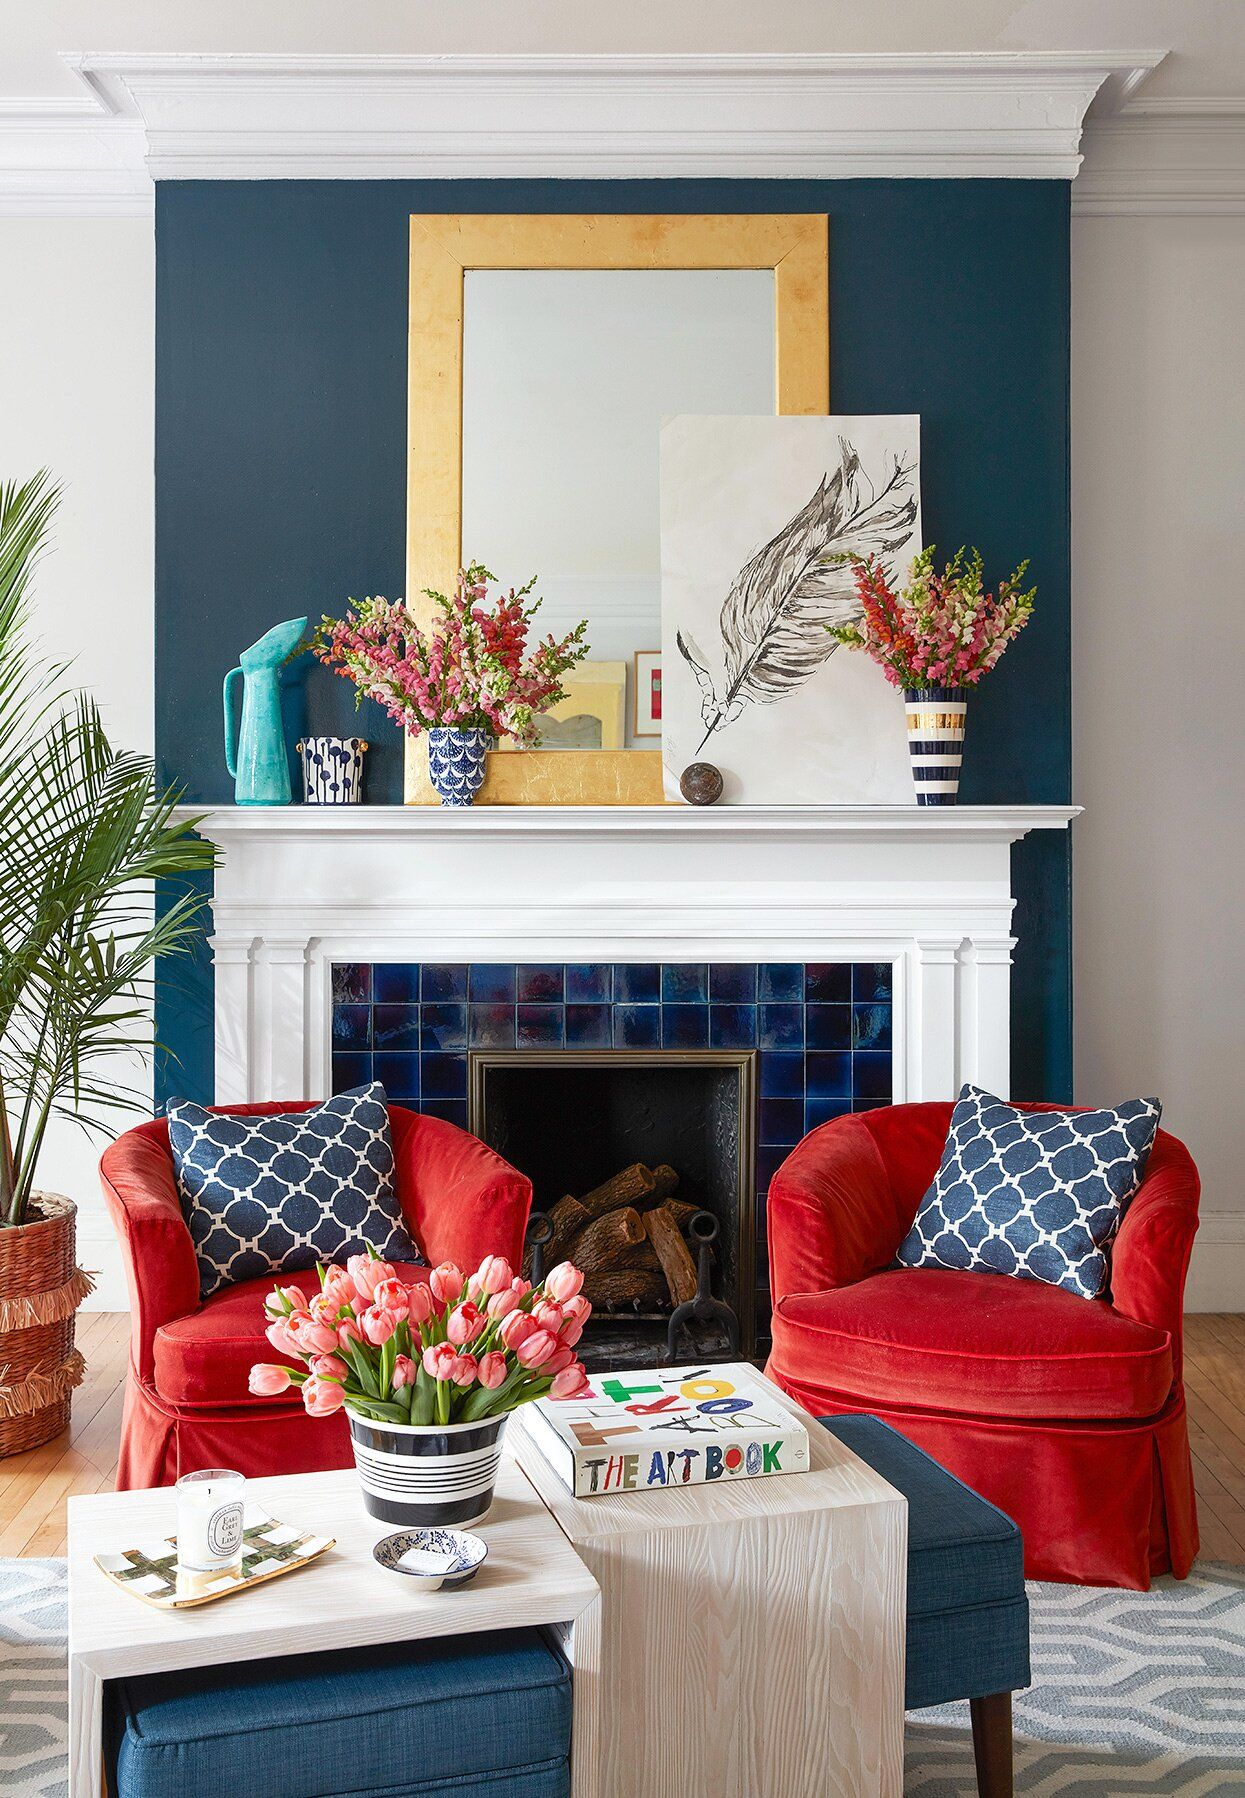 Get tips on how to decorate and furnish your living room at refinery29. 8 Paint Colors That Pair Beautifully with Yellow Wood ...